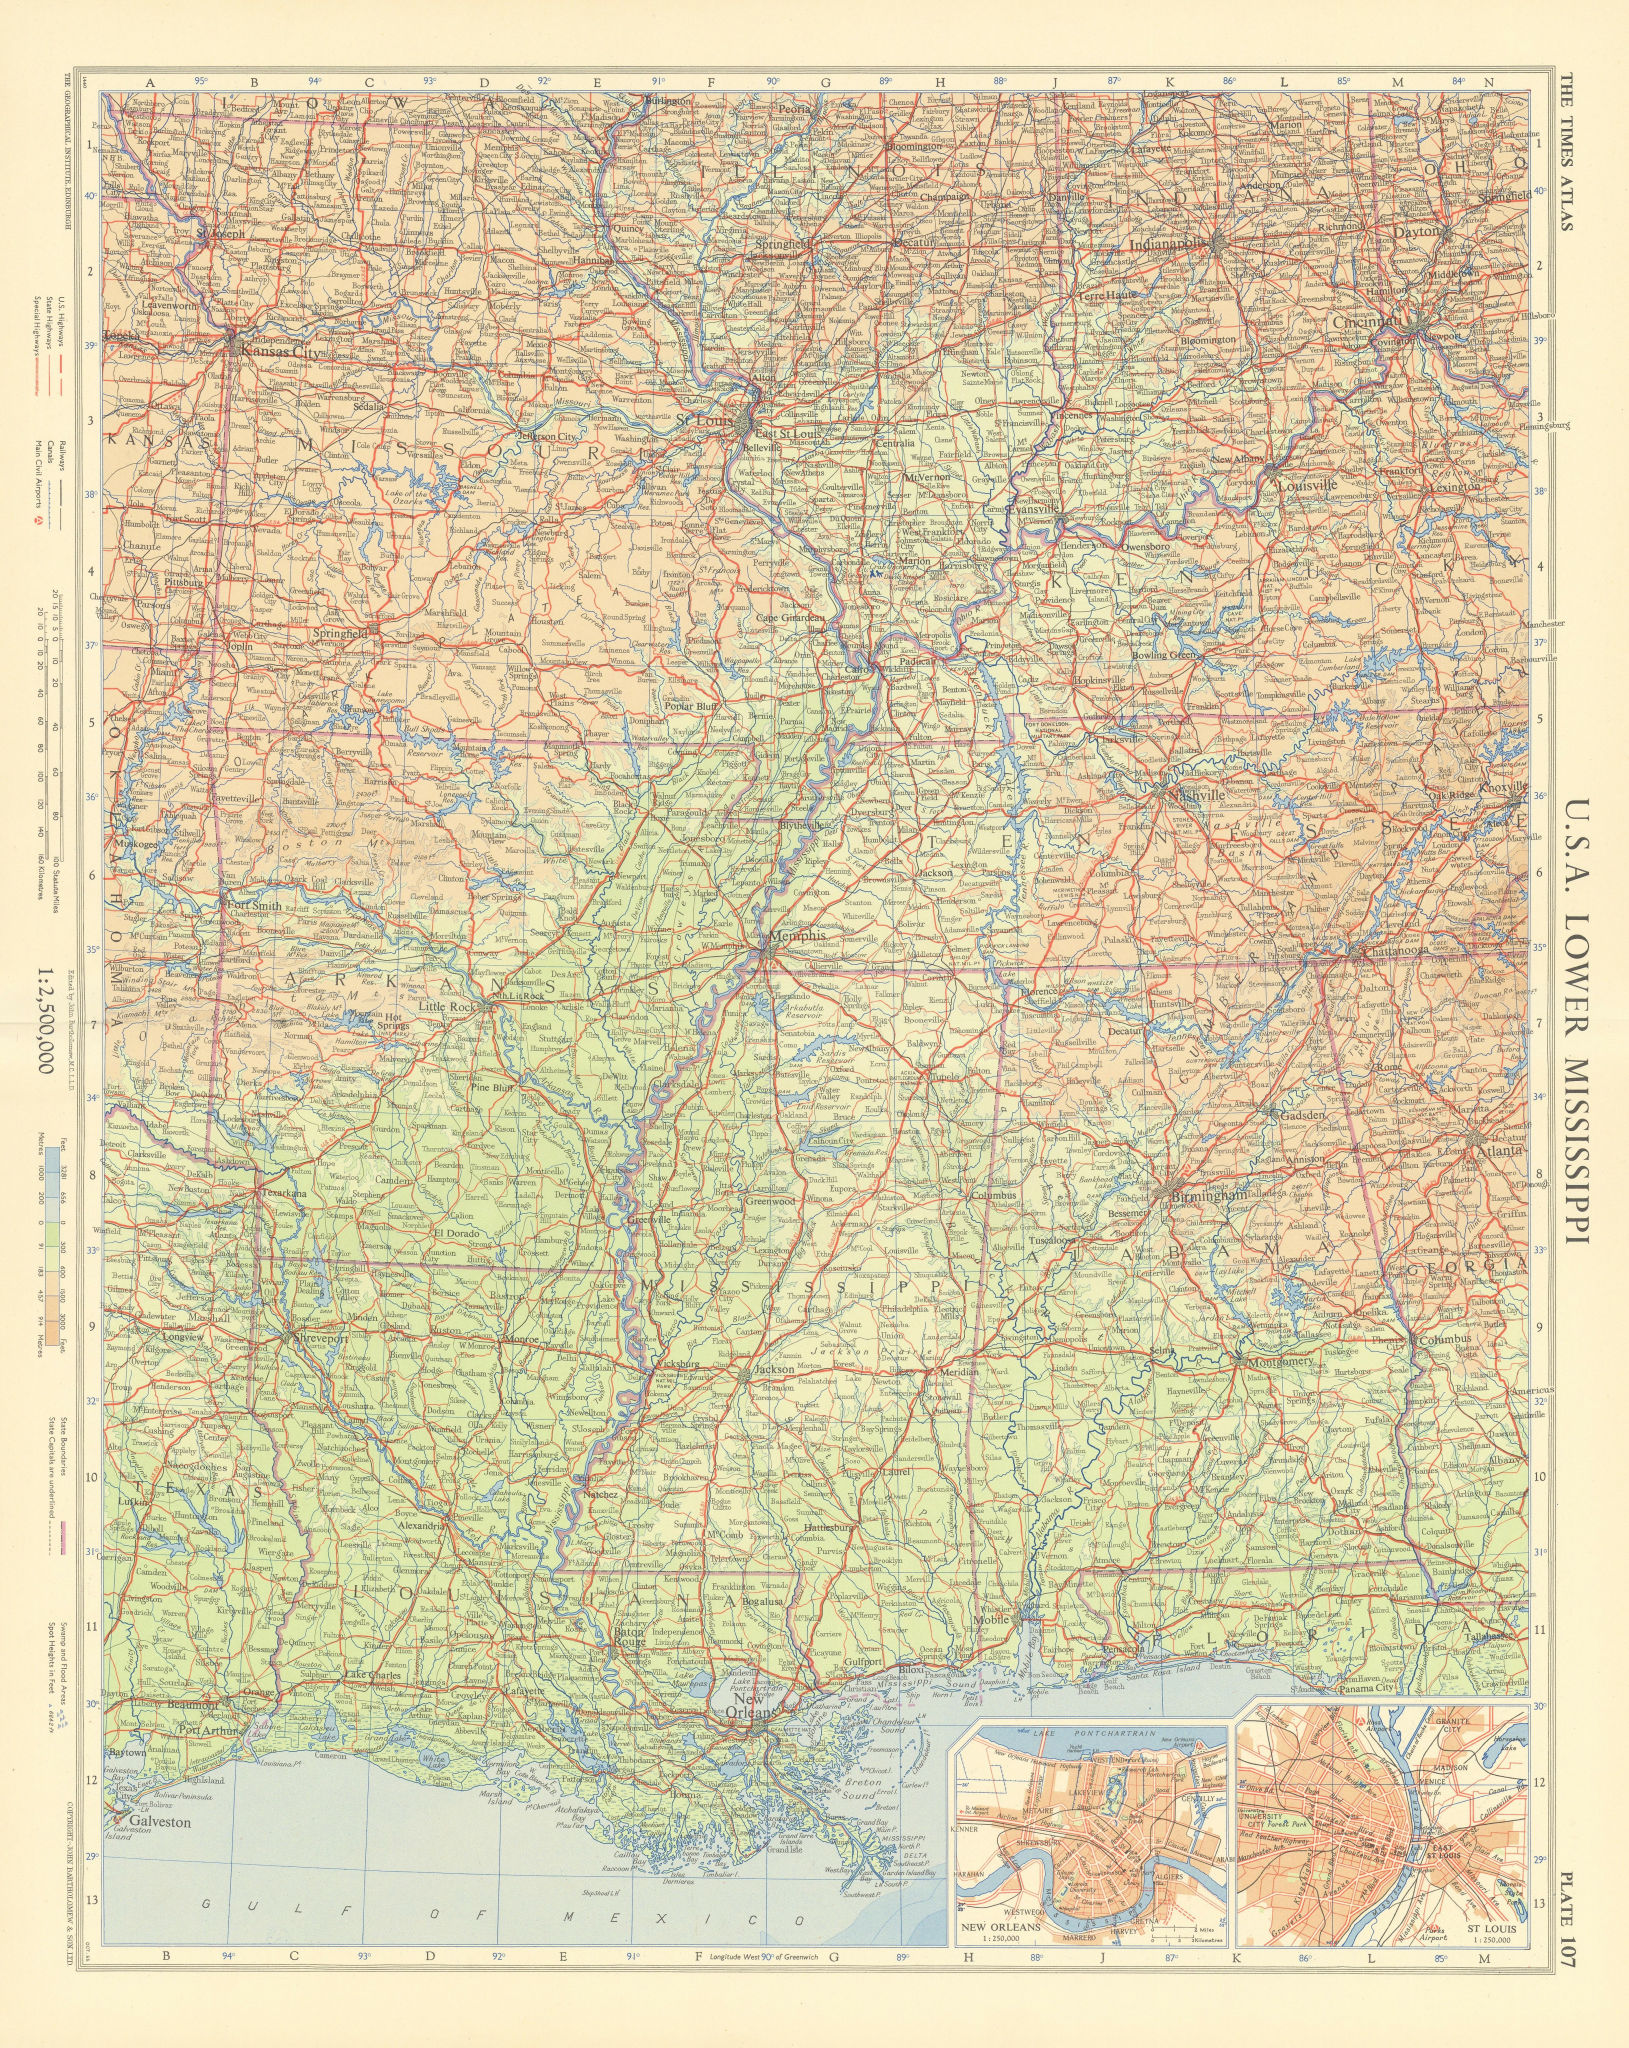 USA Lower Mississipi. New Orleans & St Louis plans. Deep South. TIMES 1957 map